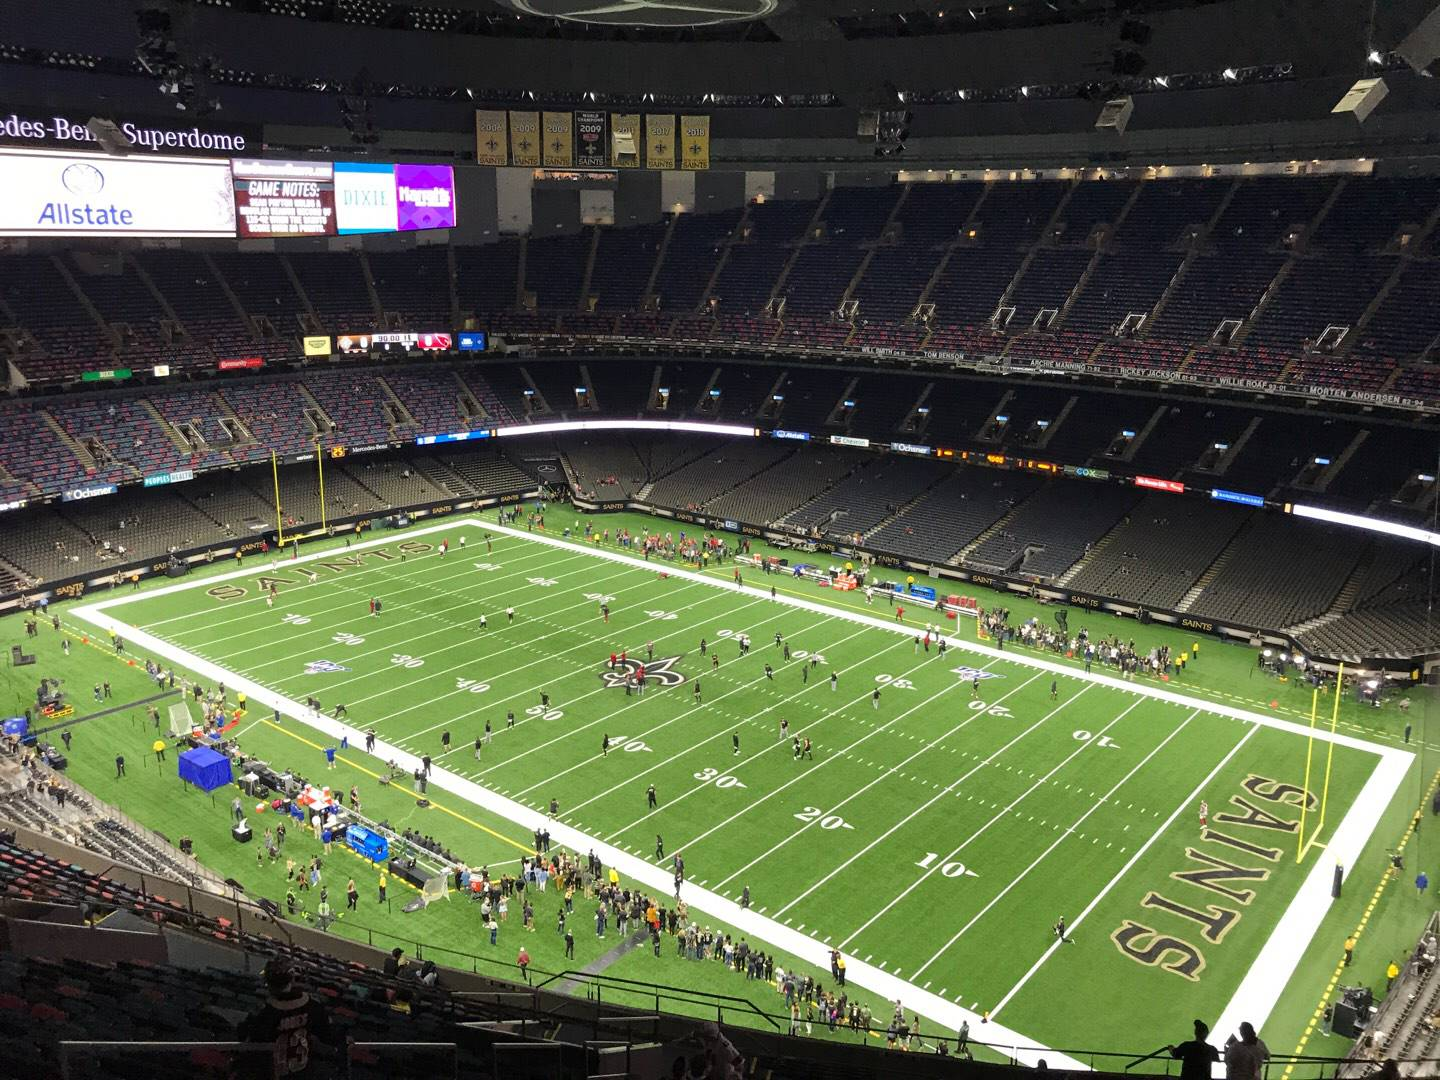 Caesars Superdome Section 634 Row 28 Seat 17